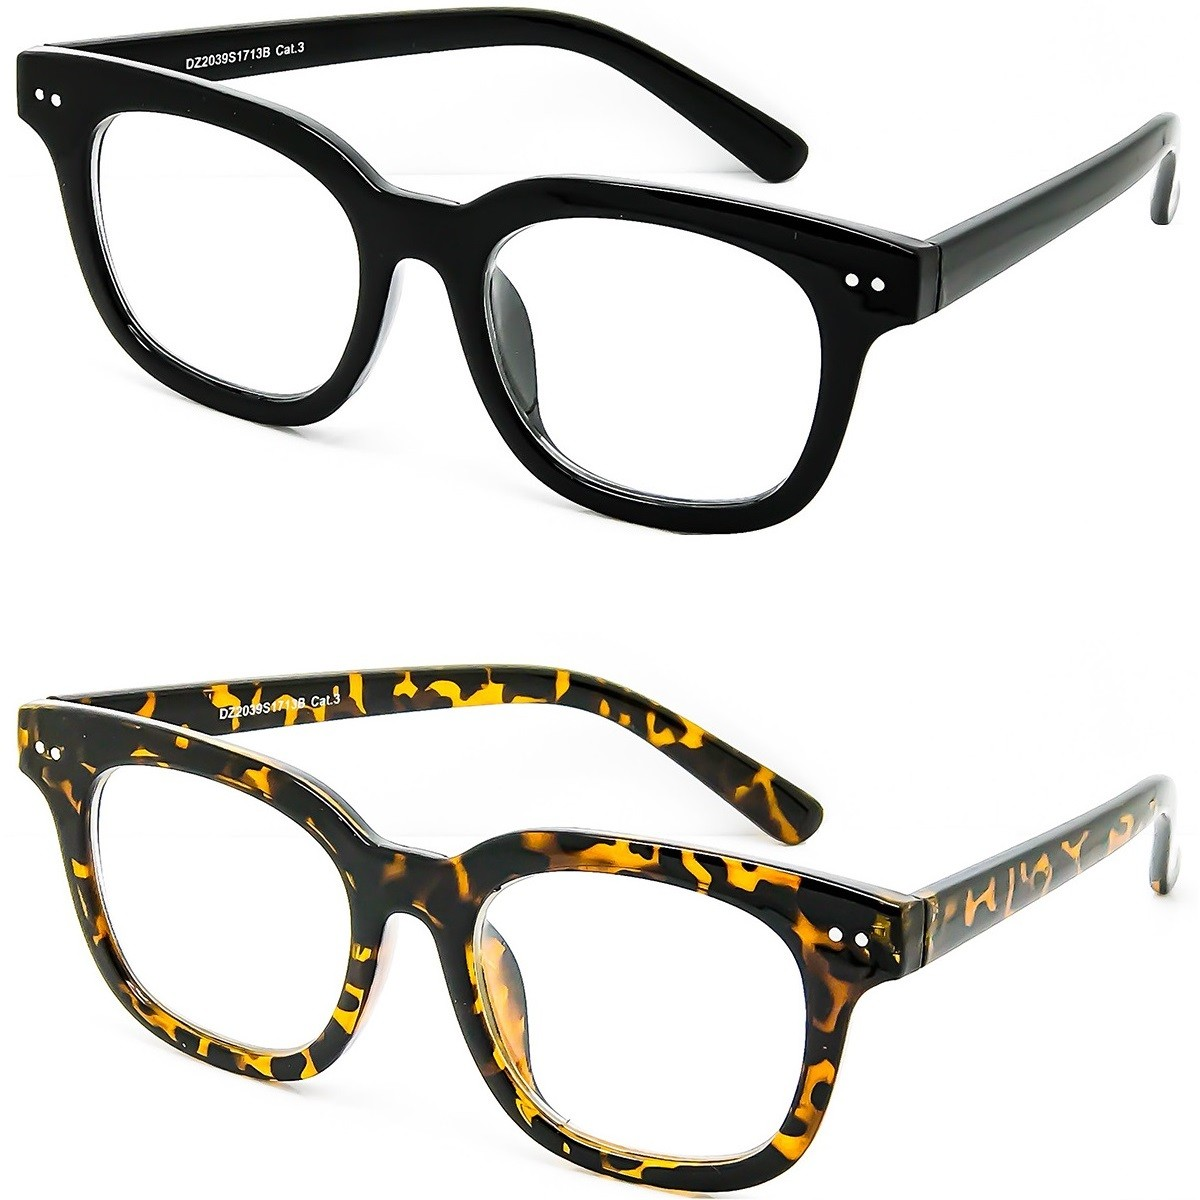 Glasses neutral KISS® - STYLE MOSCOT mod. BOXER - man woman VINTAGE optical frame COOL unisex